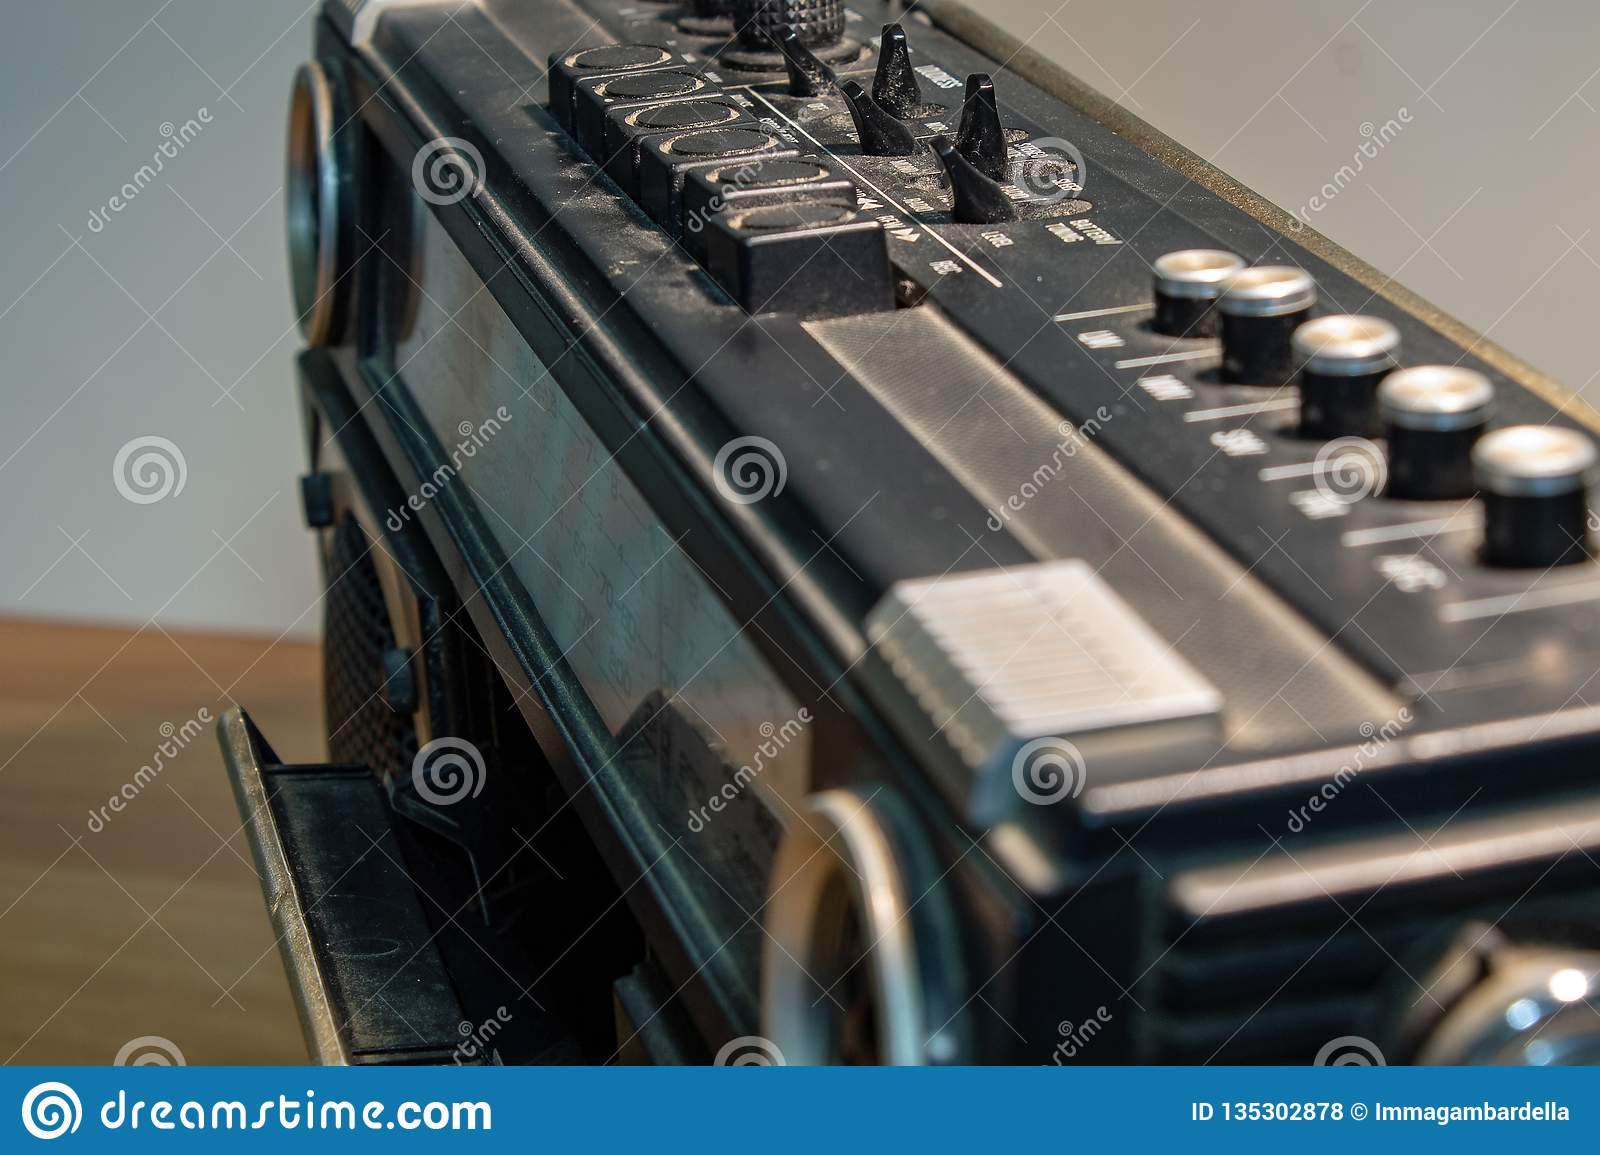 In the 70s and 80s the music was listened to through the cassettes, a magnetic storage device. The radios were very large.